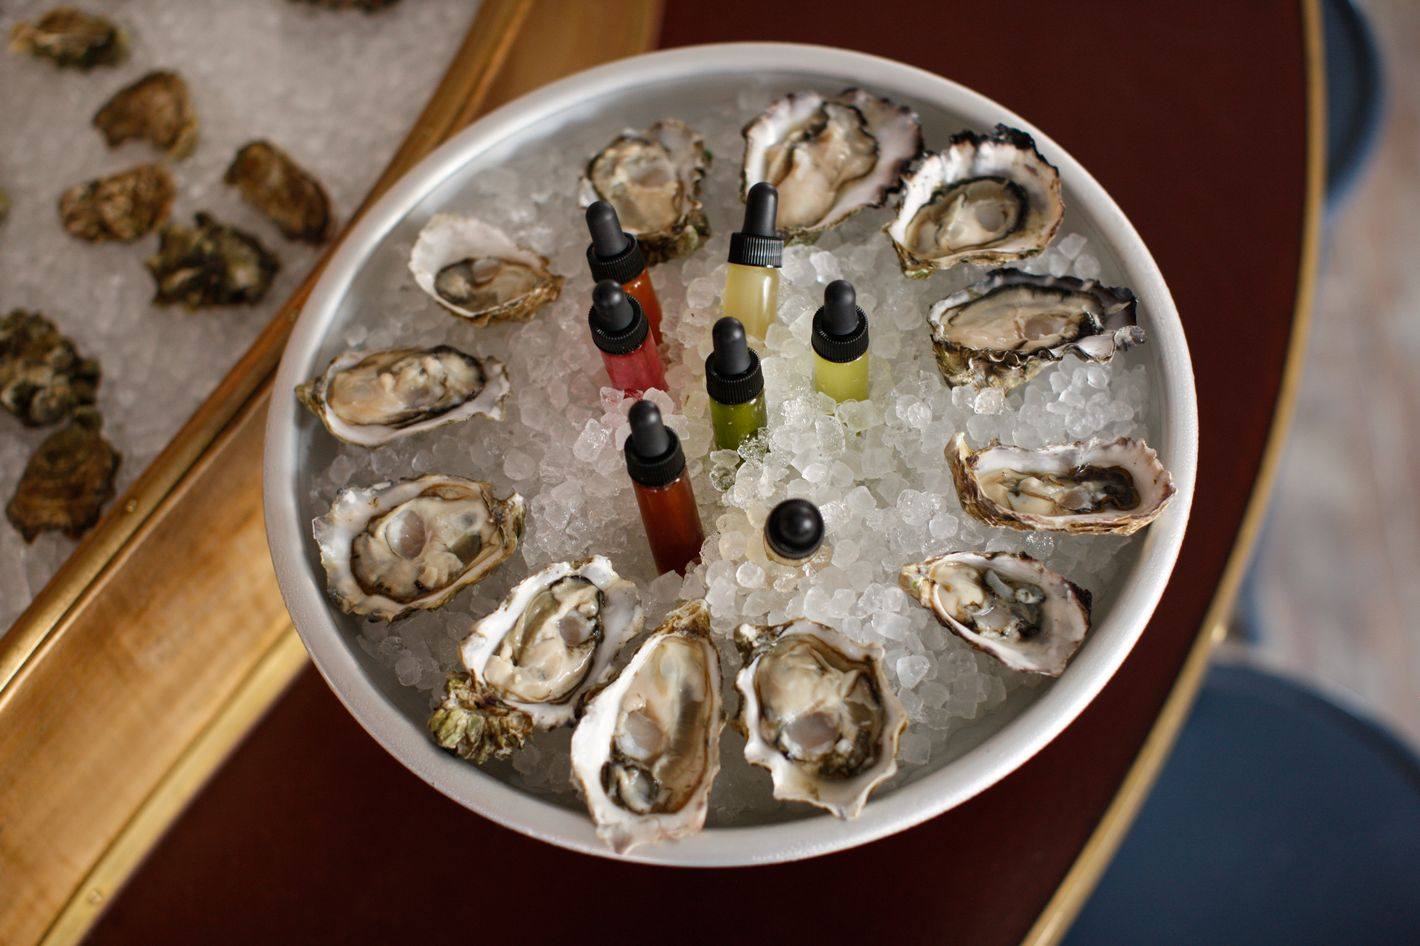 Oysters at Grand Army are good way to celebrate casually.